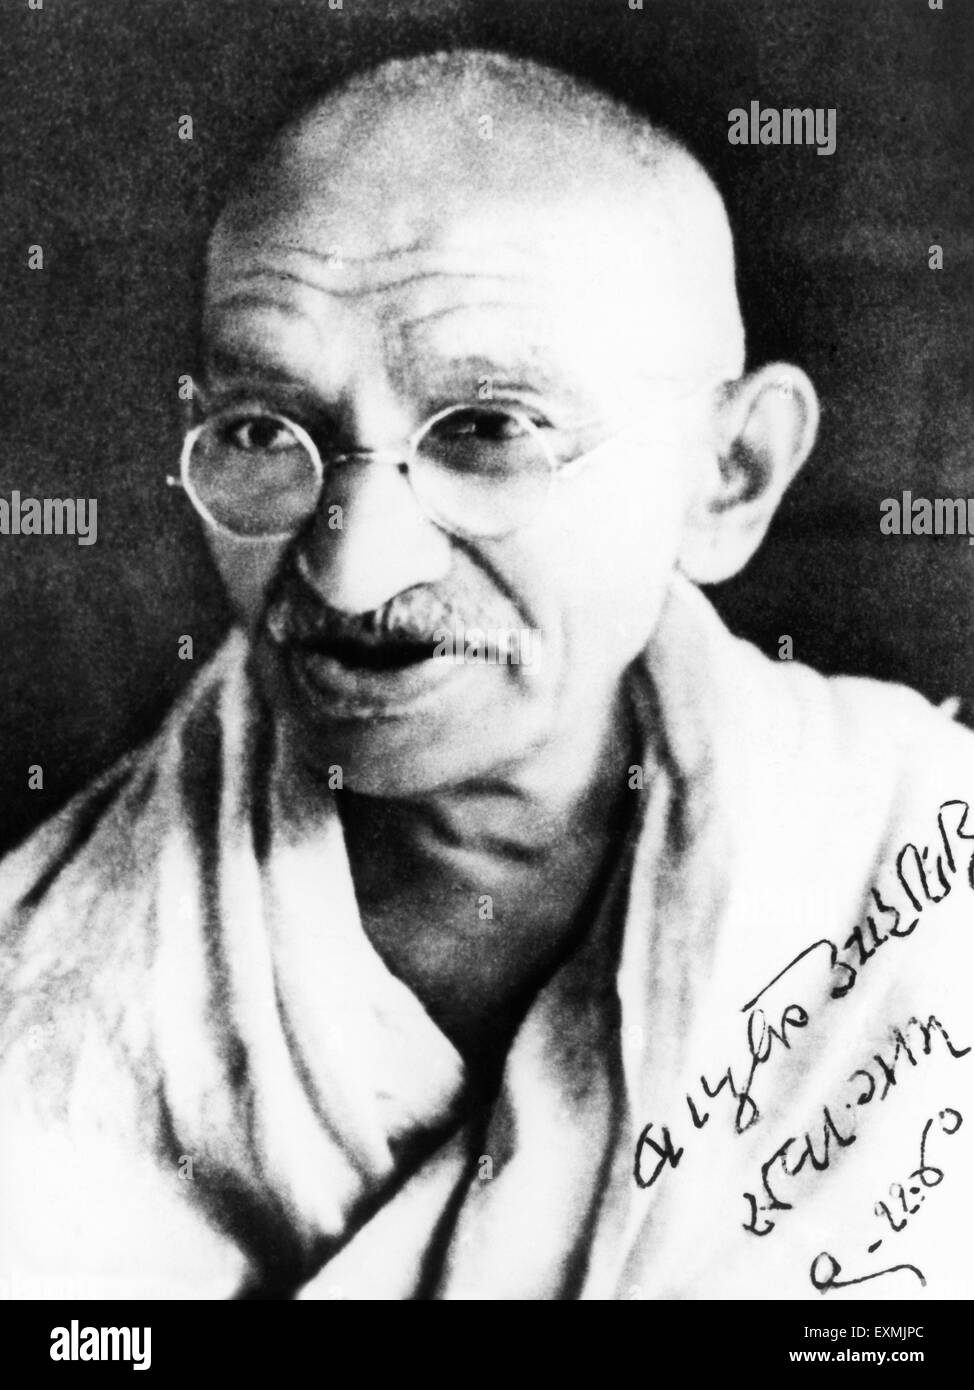 Portrait of Mahatma Gandhi signed by him with Bapu ke ashirwaad Bapu's blessings ; Sevagram ; 6th November 1940 - Stock Image